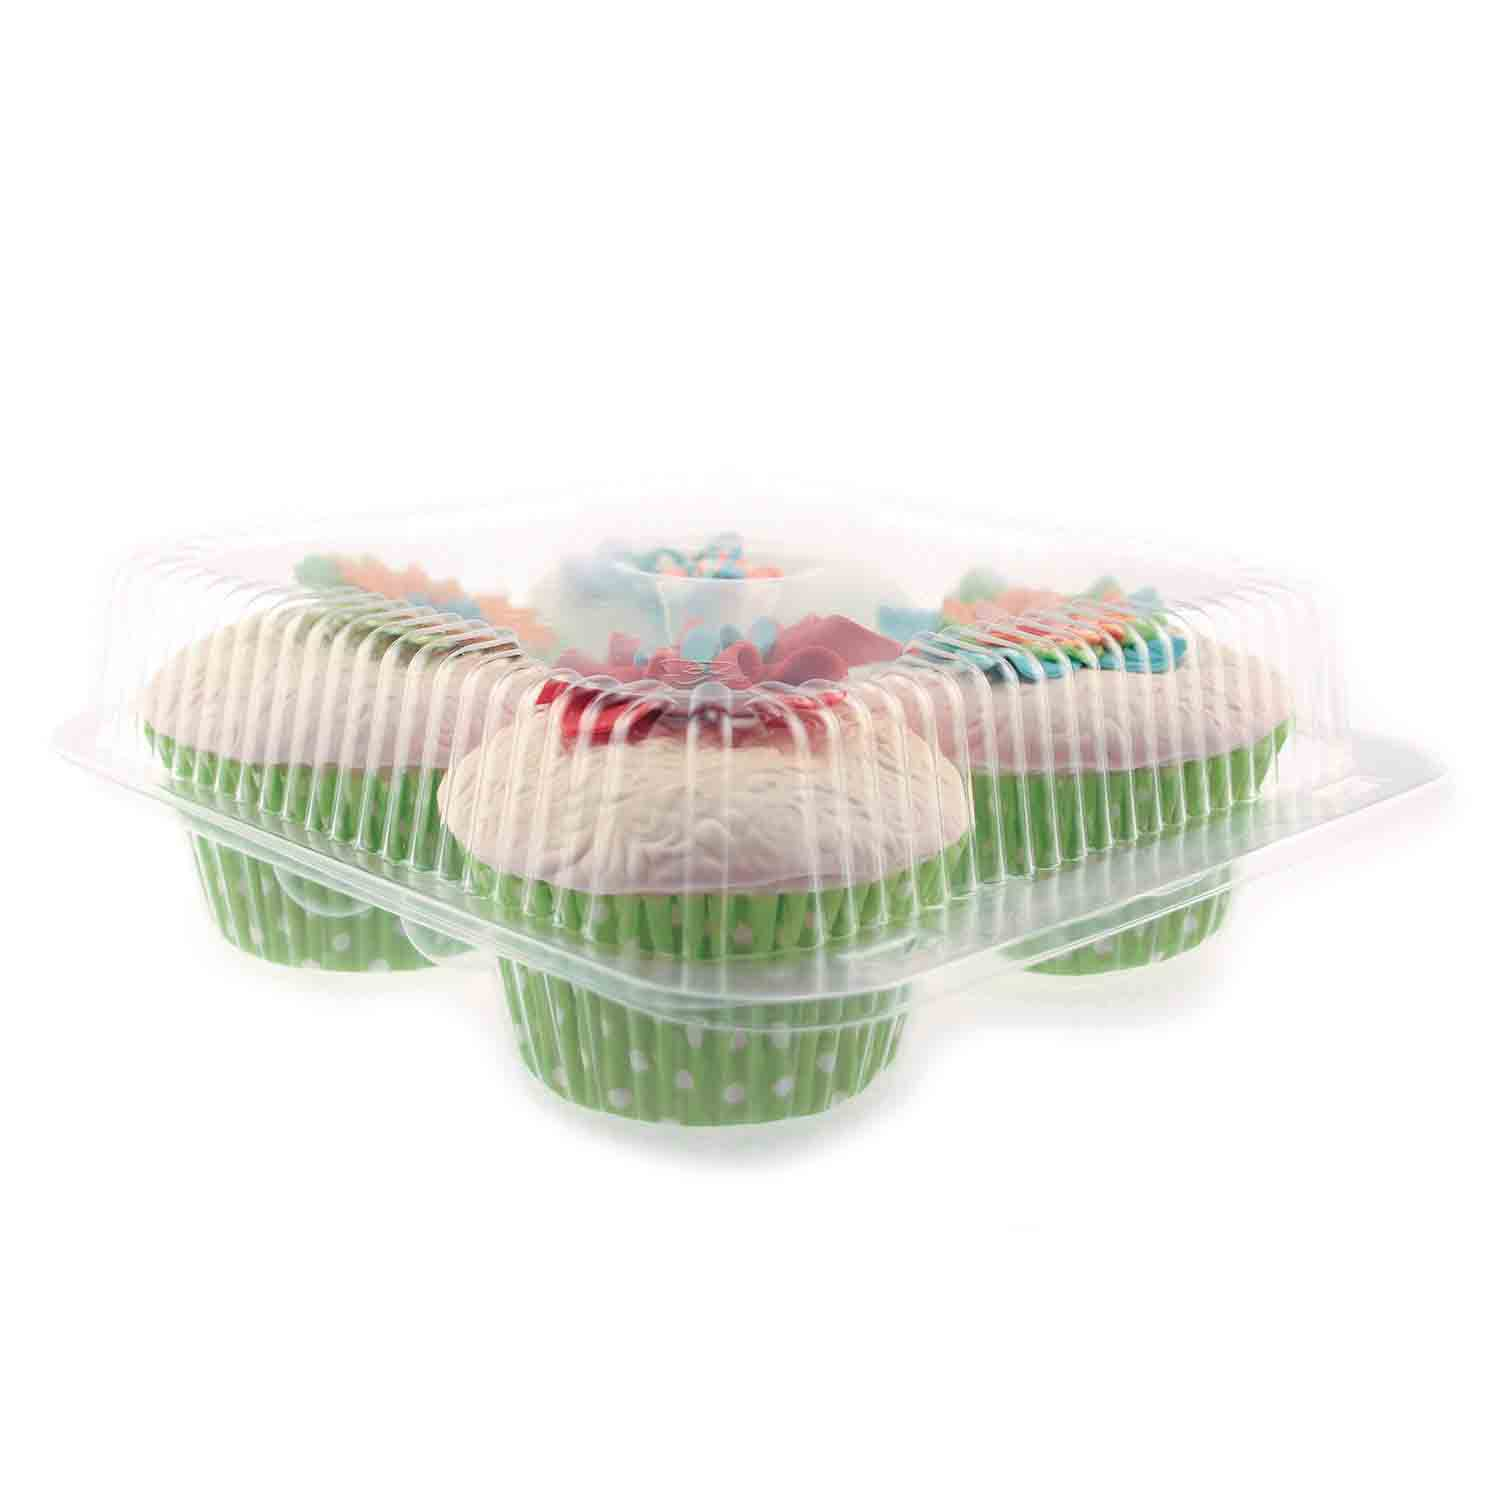 Plastic Shell - Holds 4 Jumbo Size Cupcakes